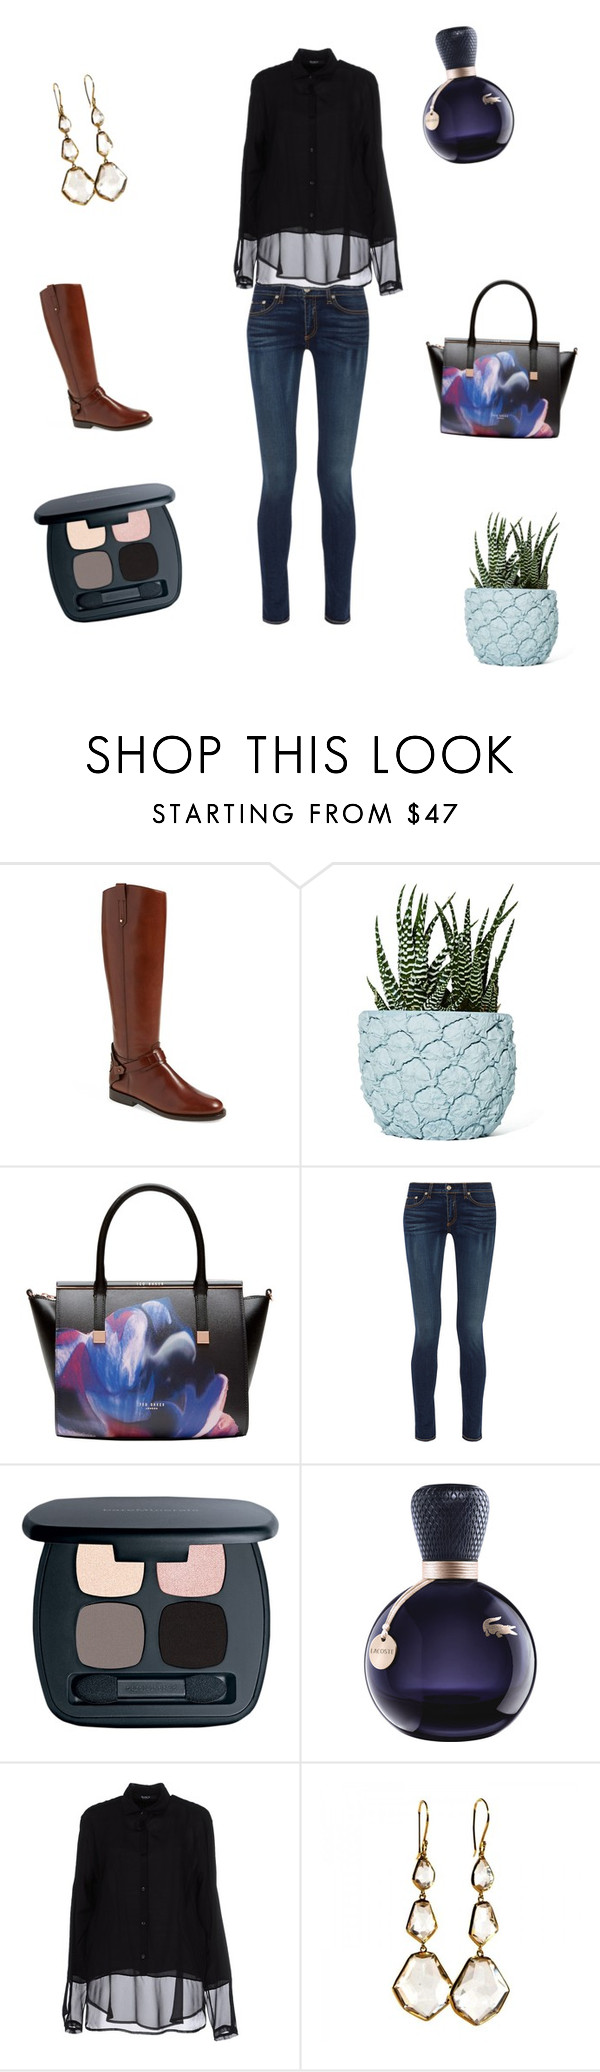 """""""Skinny and a black blouse"""" by patricia-lachat-burkhalter ❤ liked on Polyvore featuring Tory Burch, Chen Chen & Kai Williams, Ted Baker, rag & bone, Bare Escentuals, Lacoste, Siste's and Ippolita"""